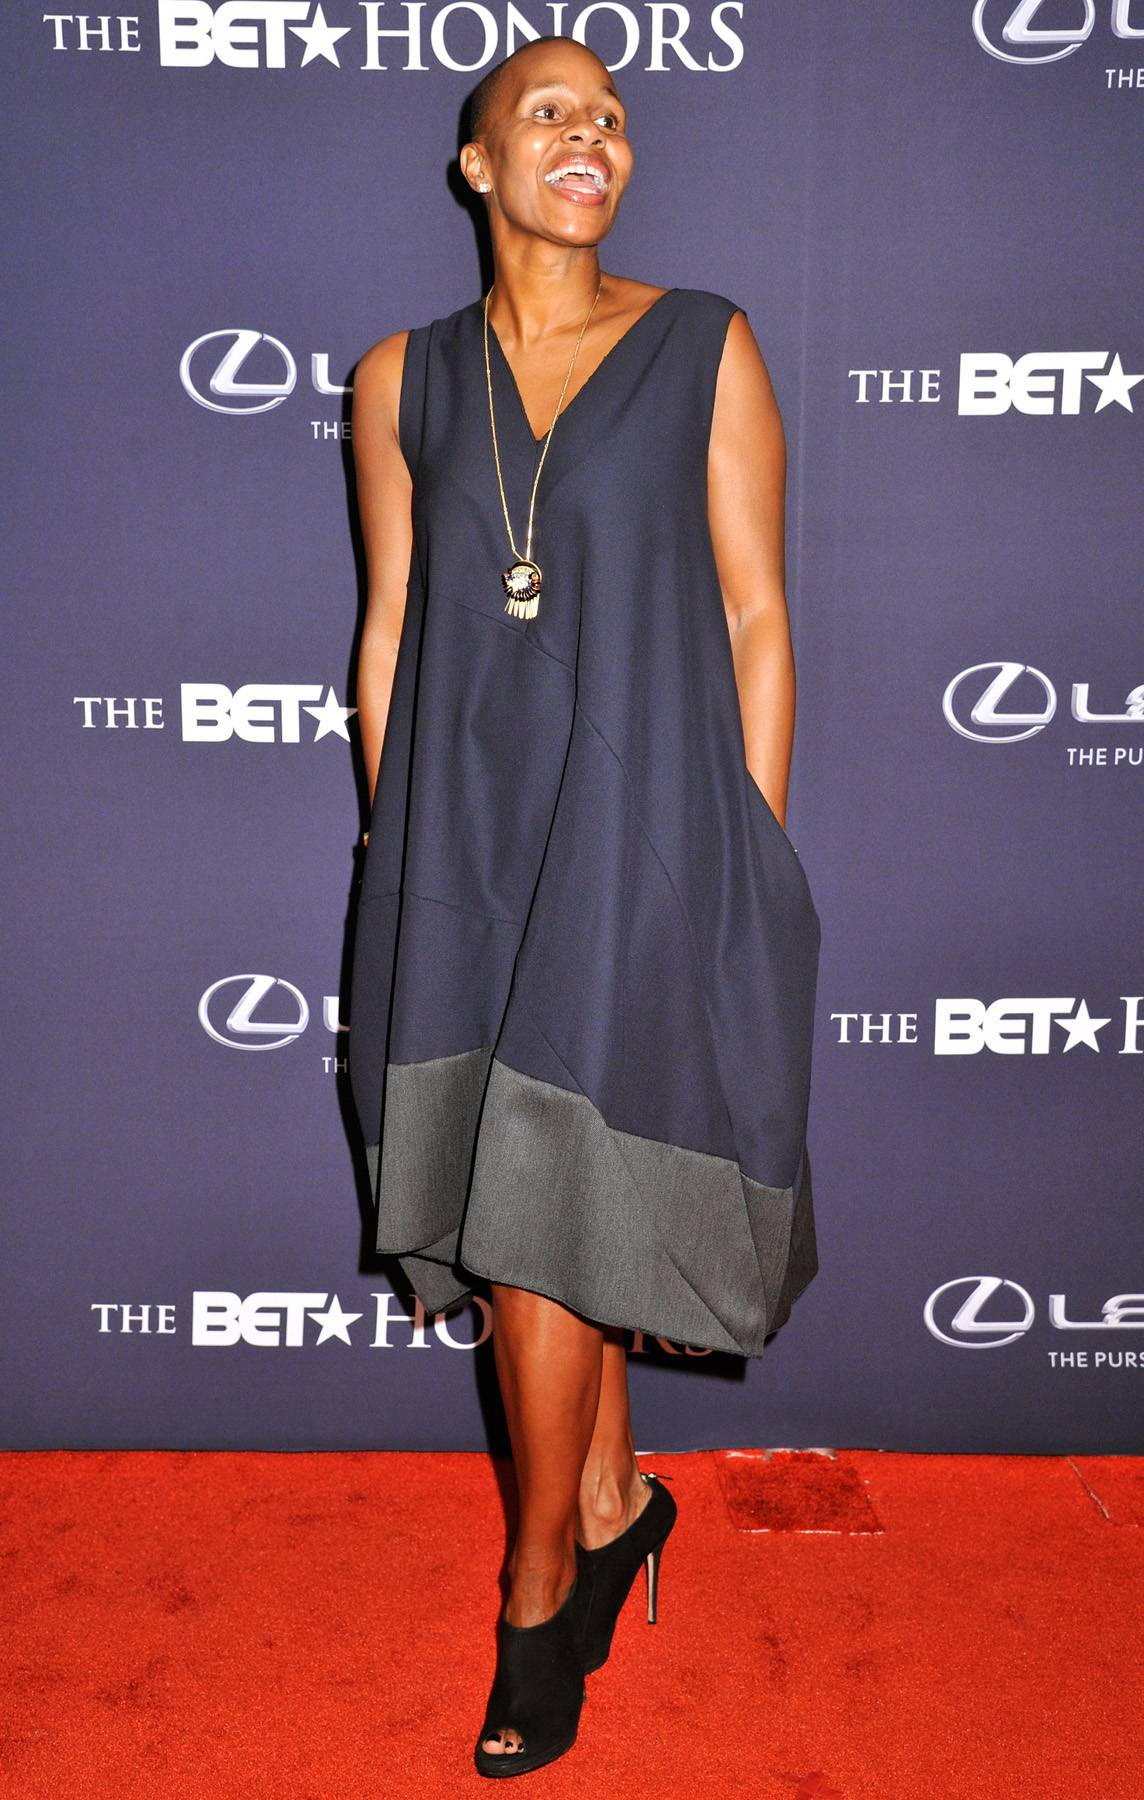 Bright and Beautiful  - Executive Vice President of Corporate Communications and Corporate Social Responsibility for BET NetworksJeanine Liburdadds a bright and beautiful elegance to the carpet in her chic free-flowing dress. (Photo: Kris Connor/BET/Getty Images for BET)